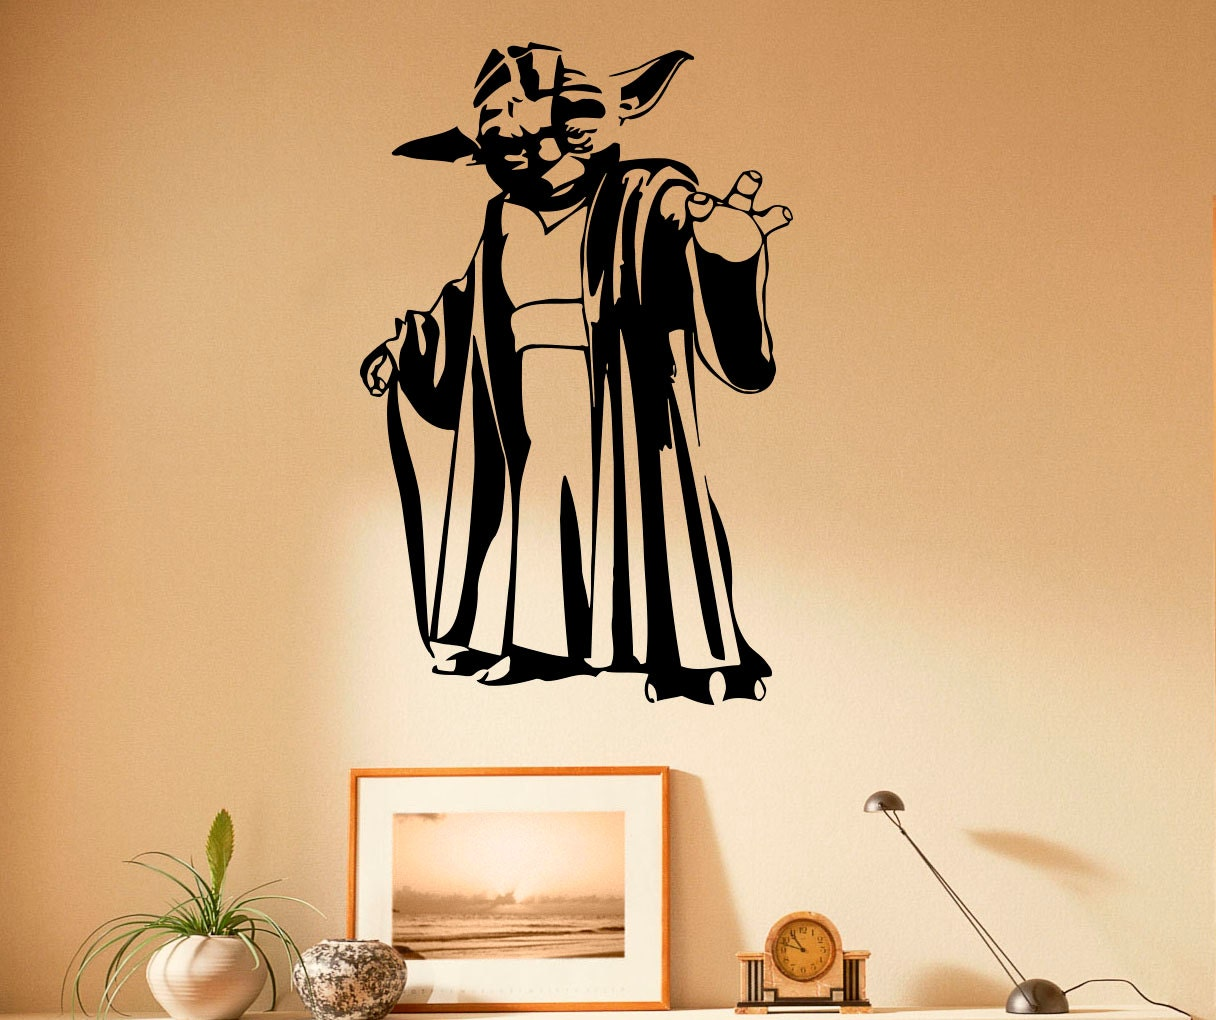 Master Yoda Wall Decal Vinyl Stickers Star Wars Home Interior